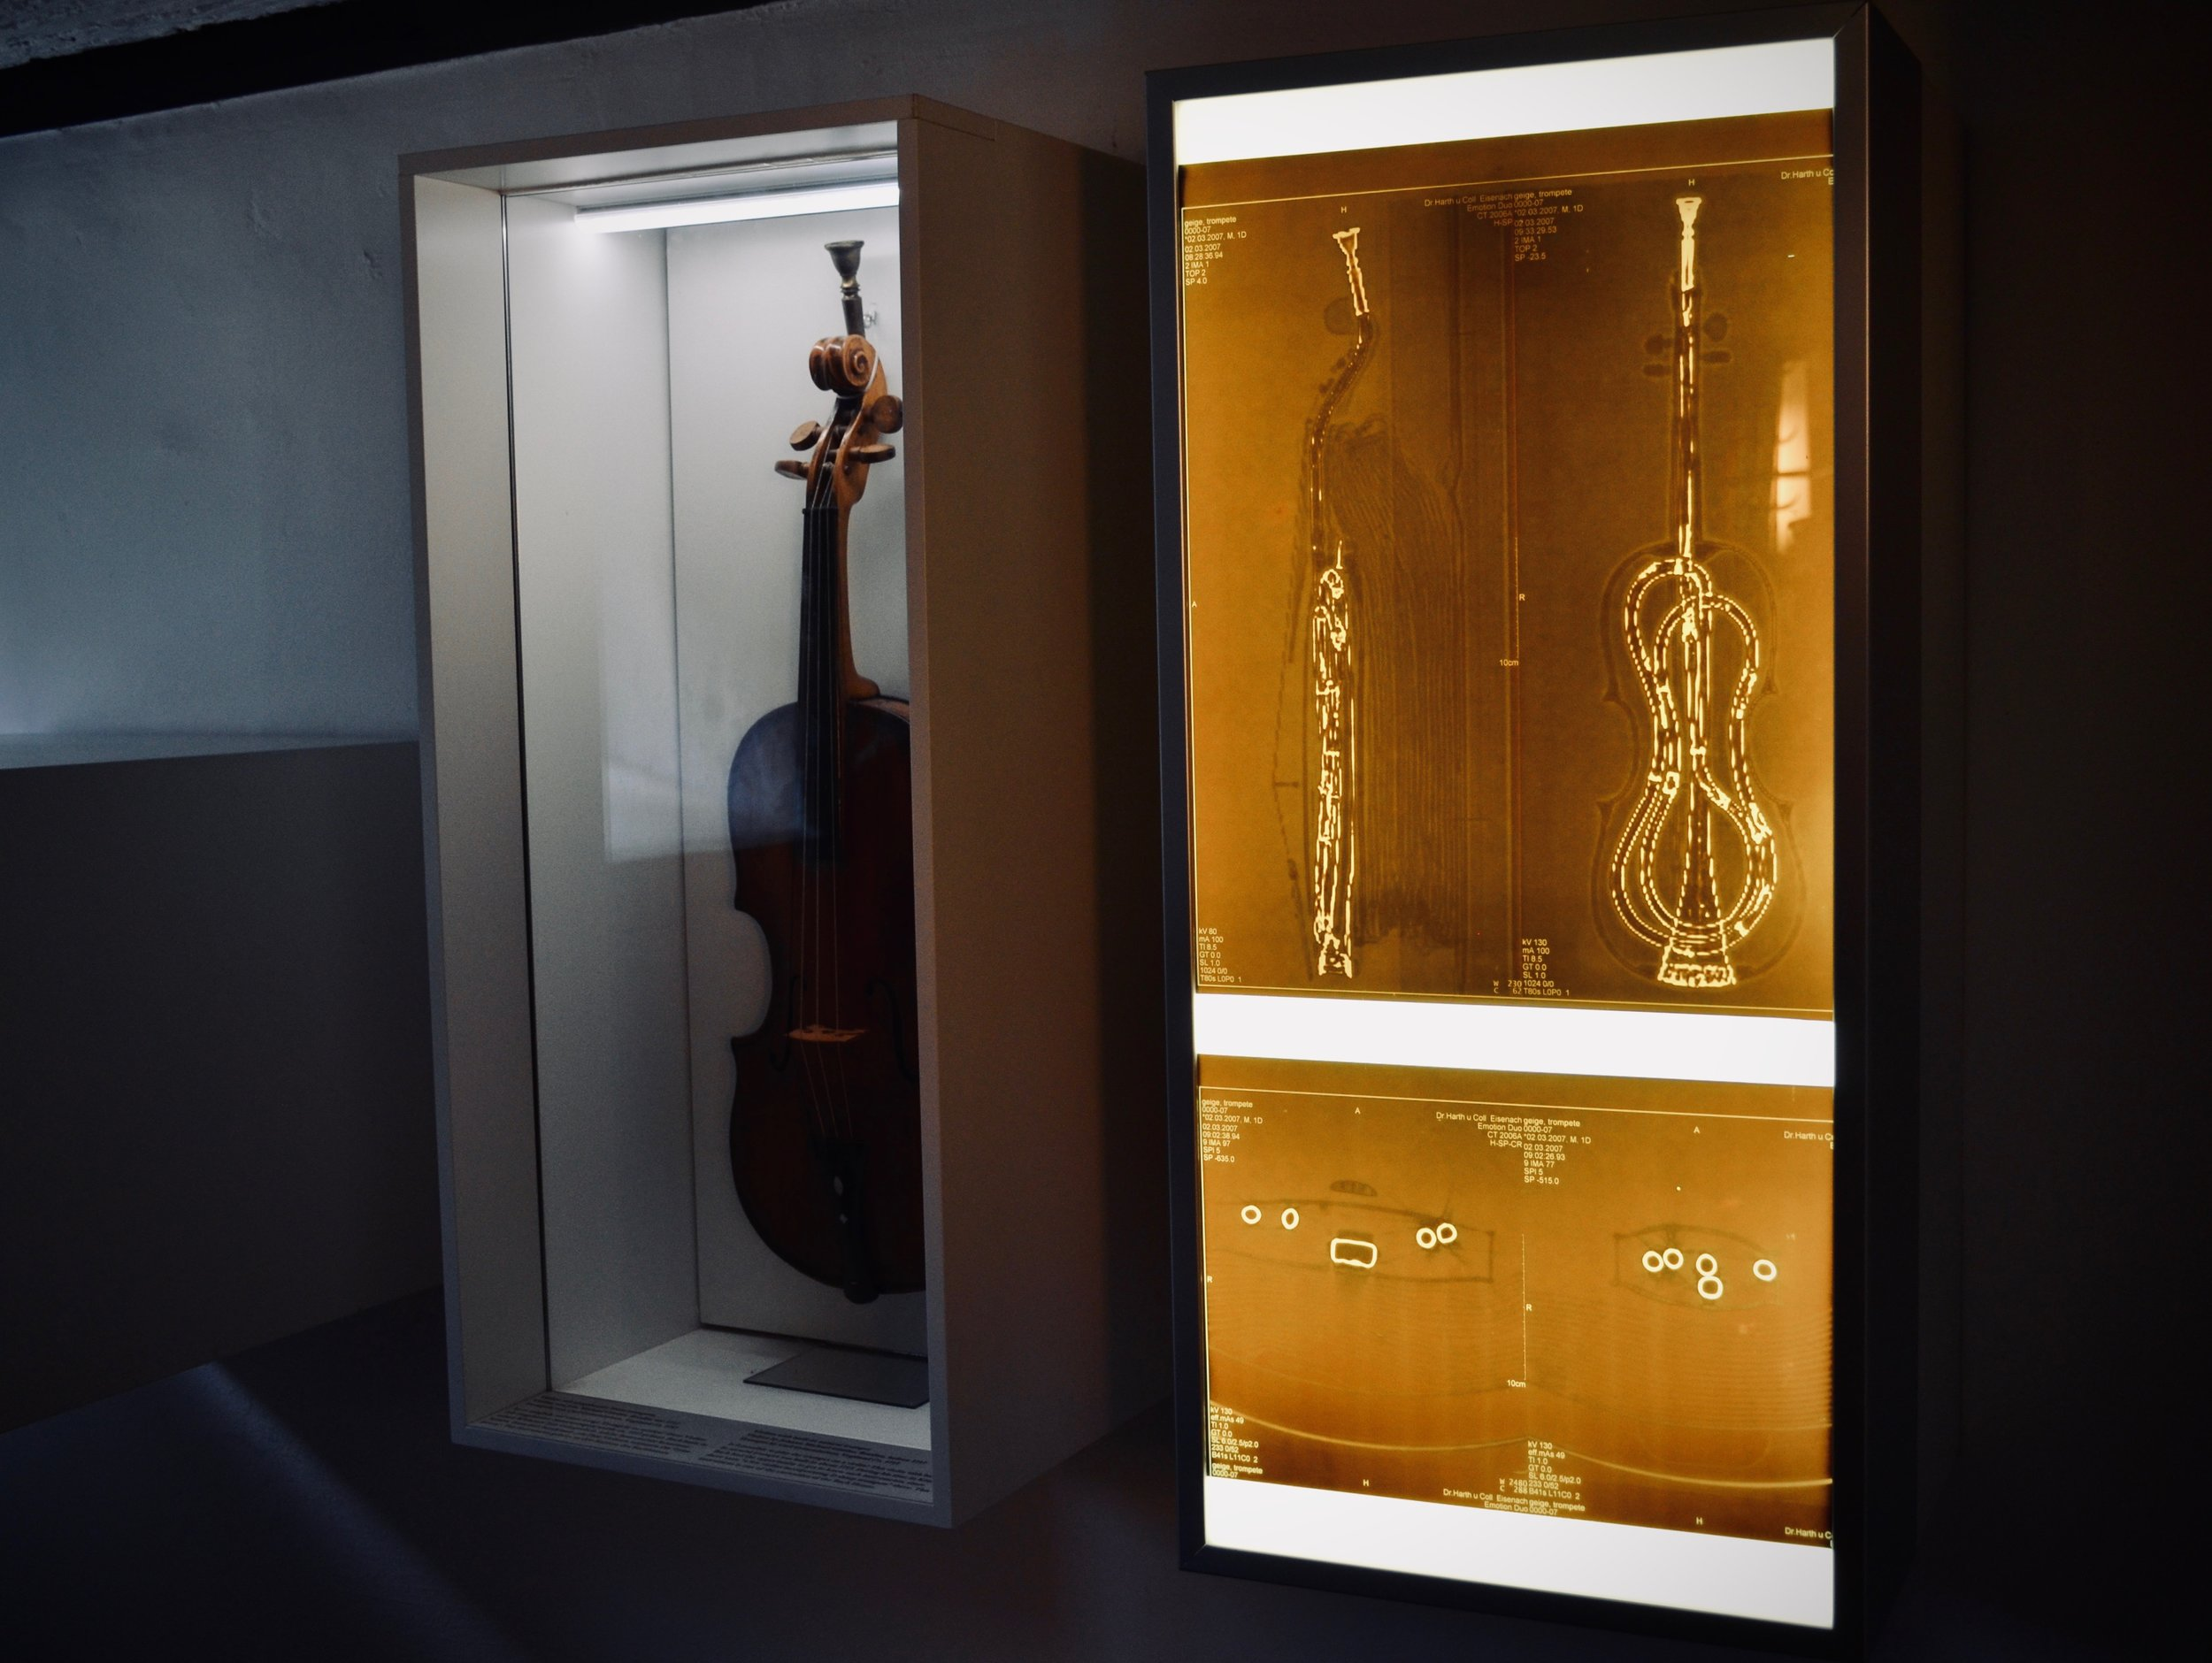 The x-ray shows how the trumpet is placed inside of the violin.